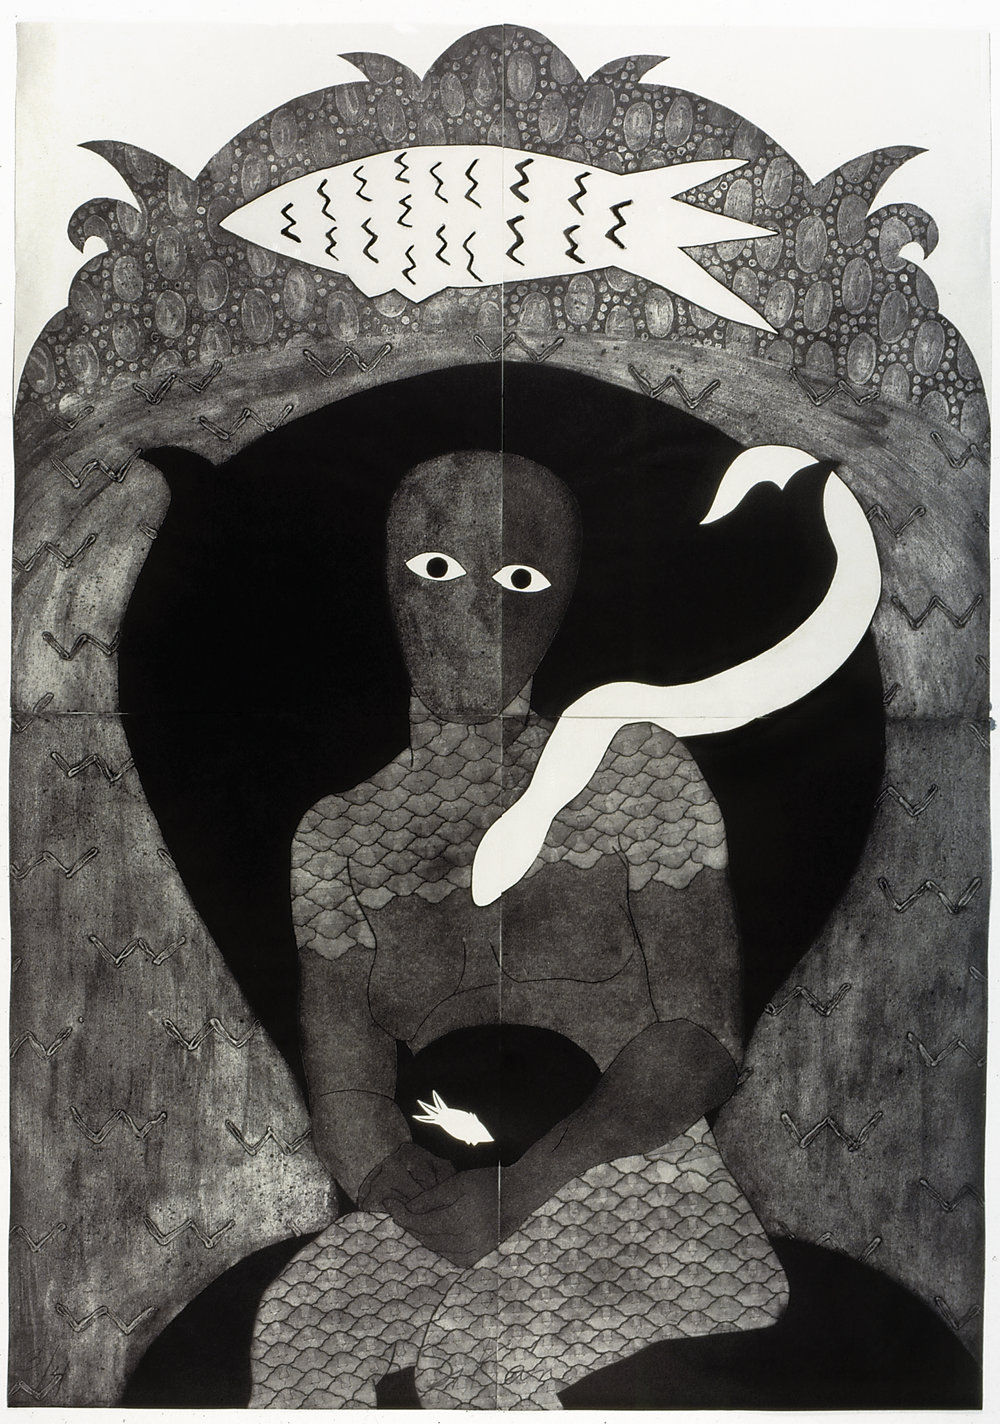 Sikán, Collograph, 1991, 202 x 138 cm. Collection of the Belkis Ayón Estate. © Estate of Belkis Ayon. Courtesy of Landau Traveling Exhibitions.